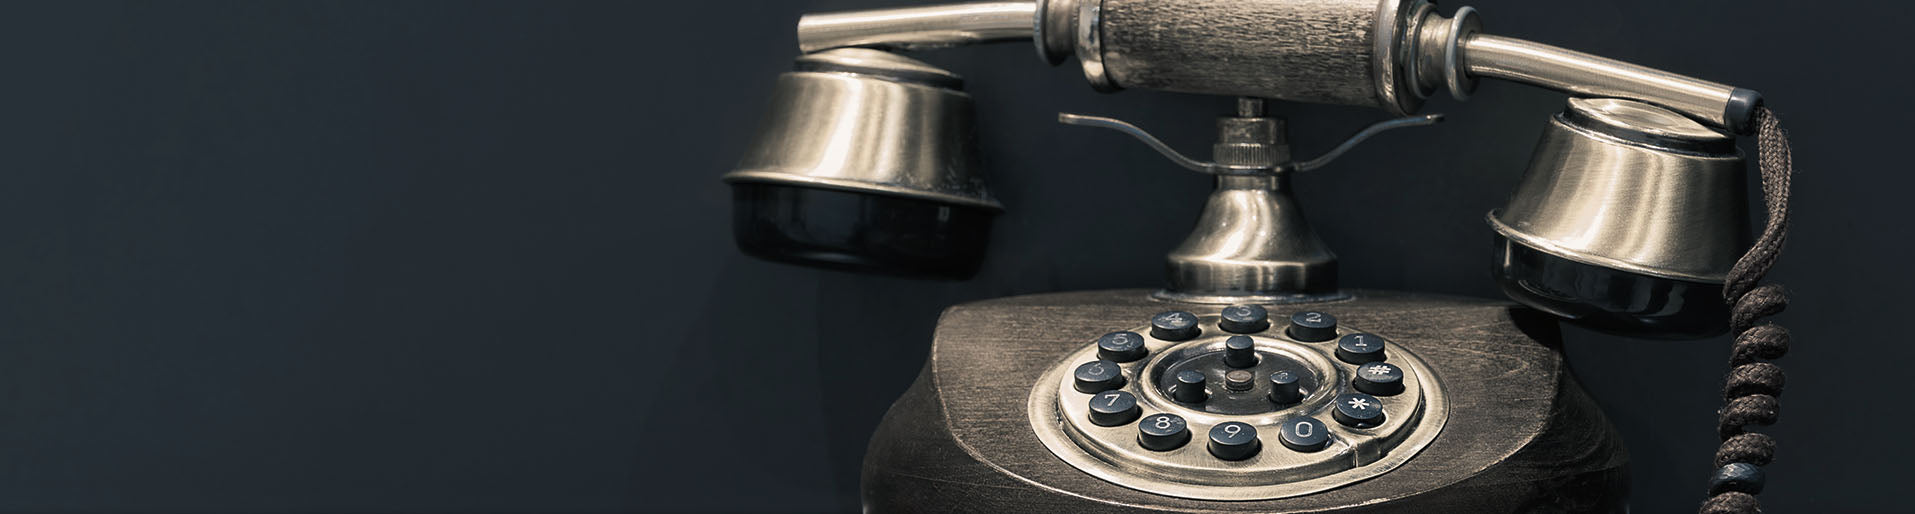 Black old telephone in front of dark background